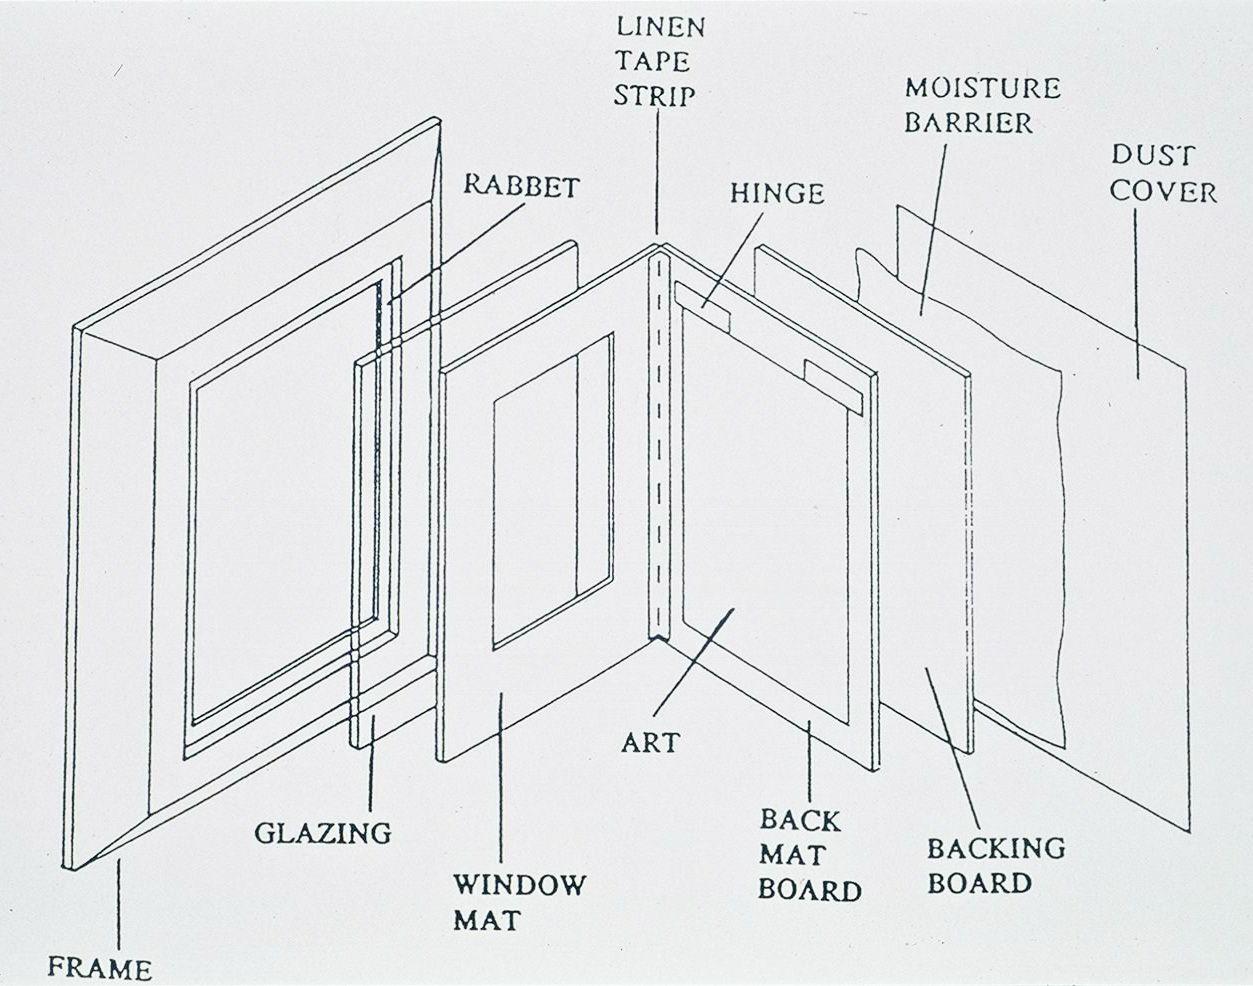 Preservation Guidelines For Matting And Framing